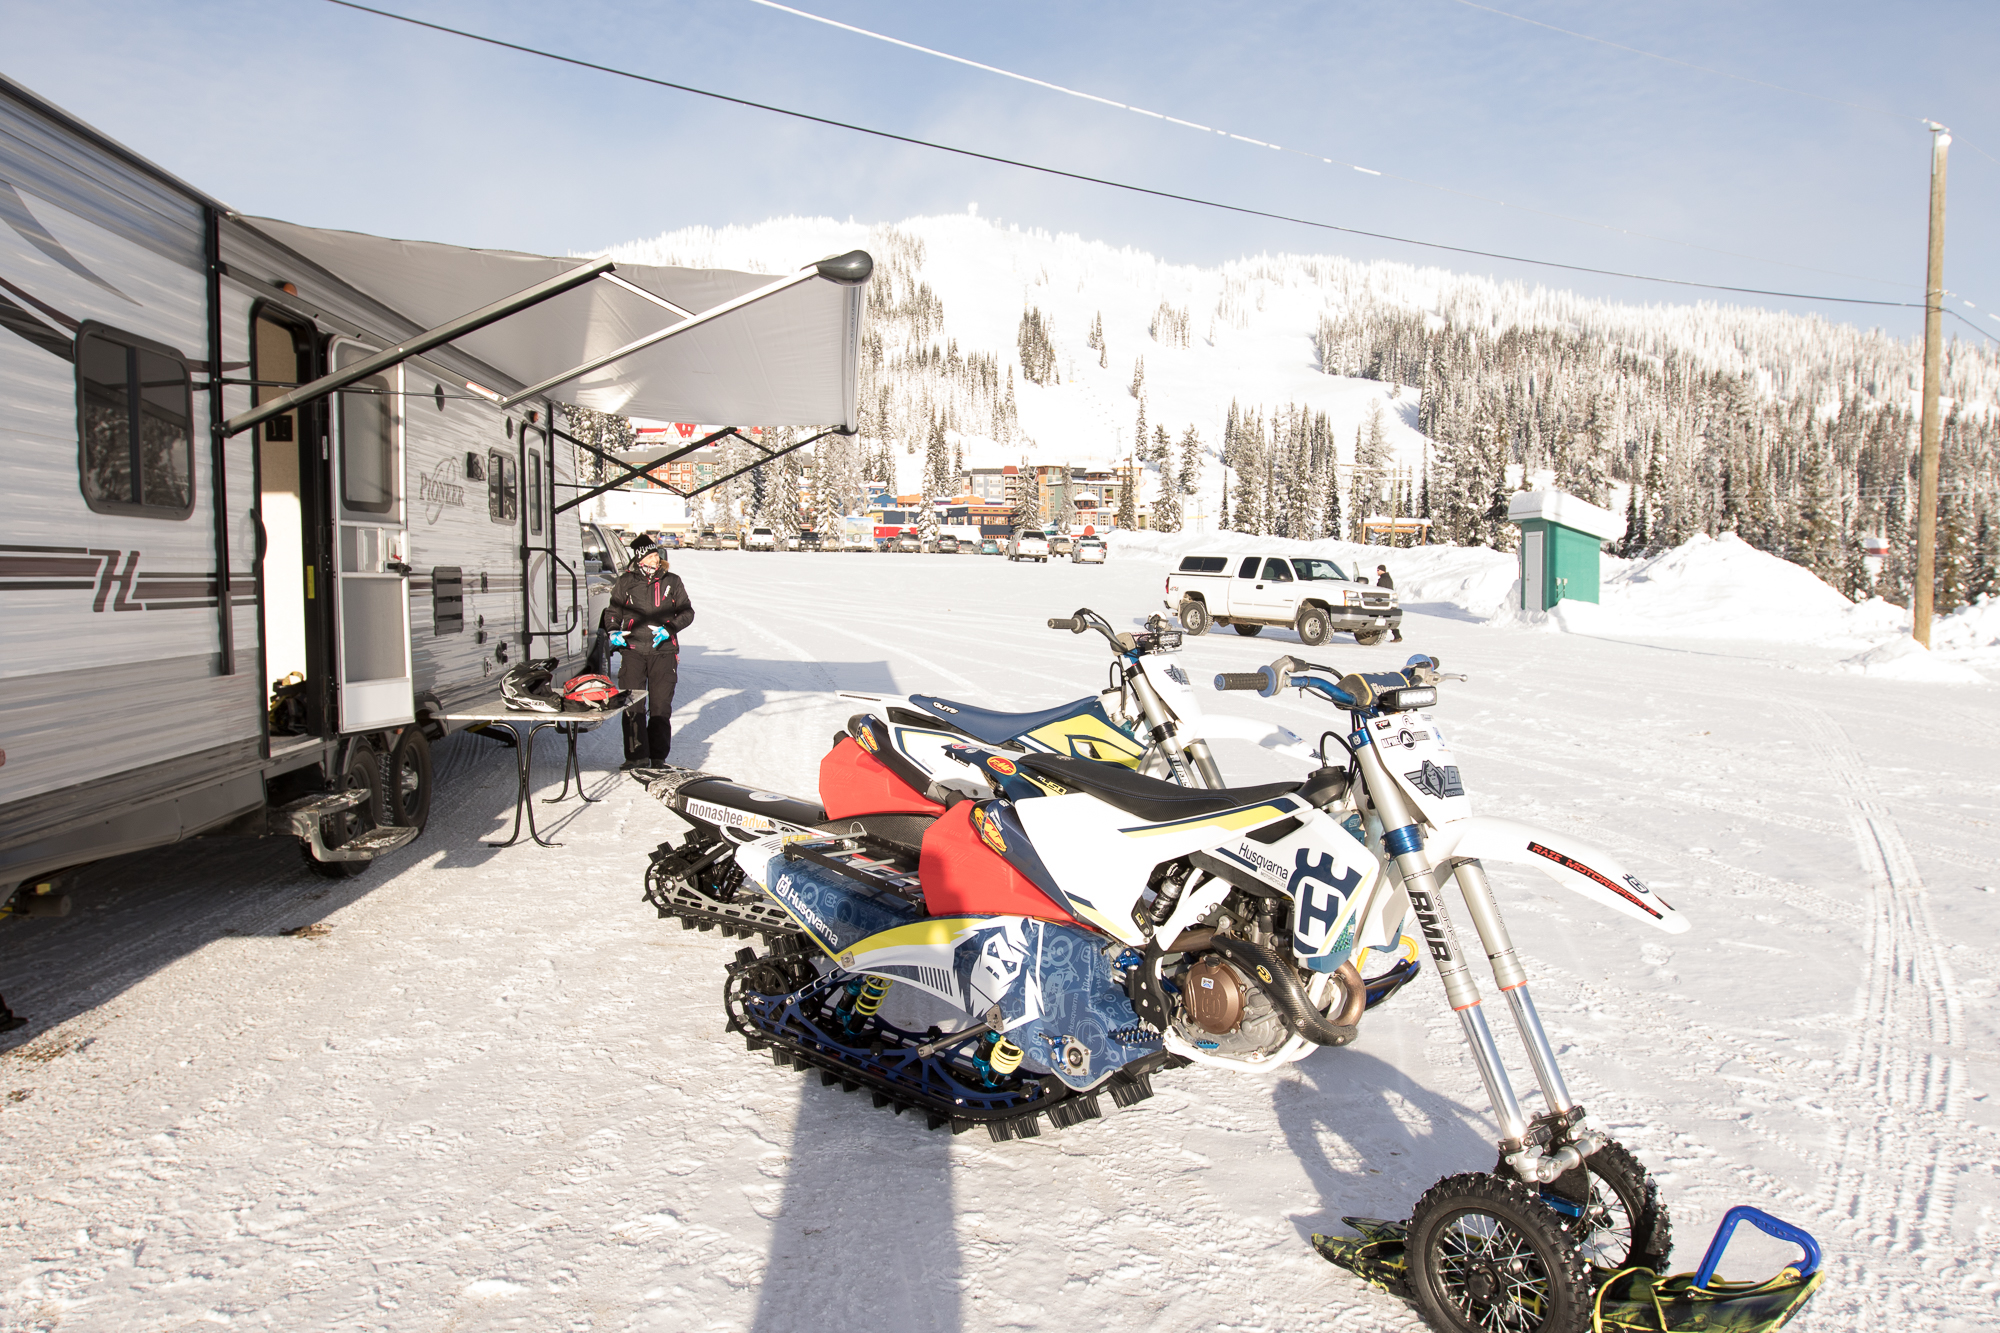 SnowMX tours by MAG are based in a trailer at bottom of ski hill